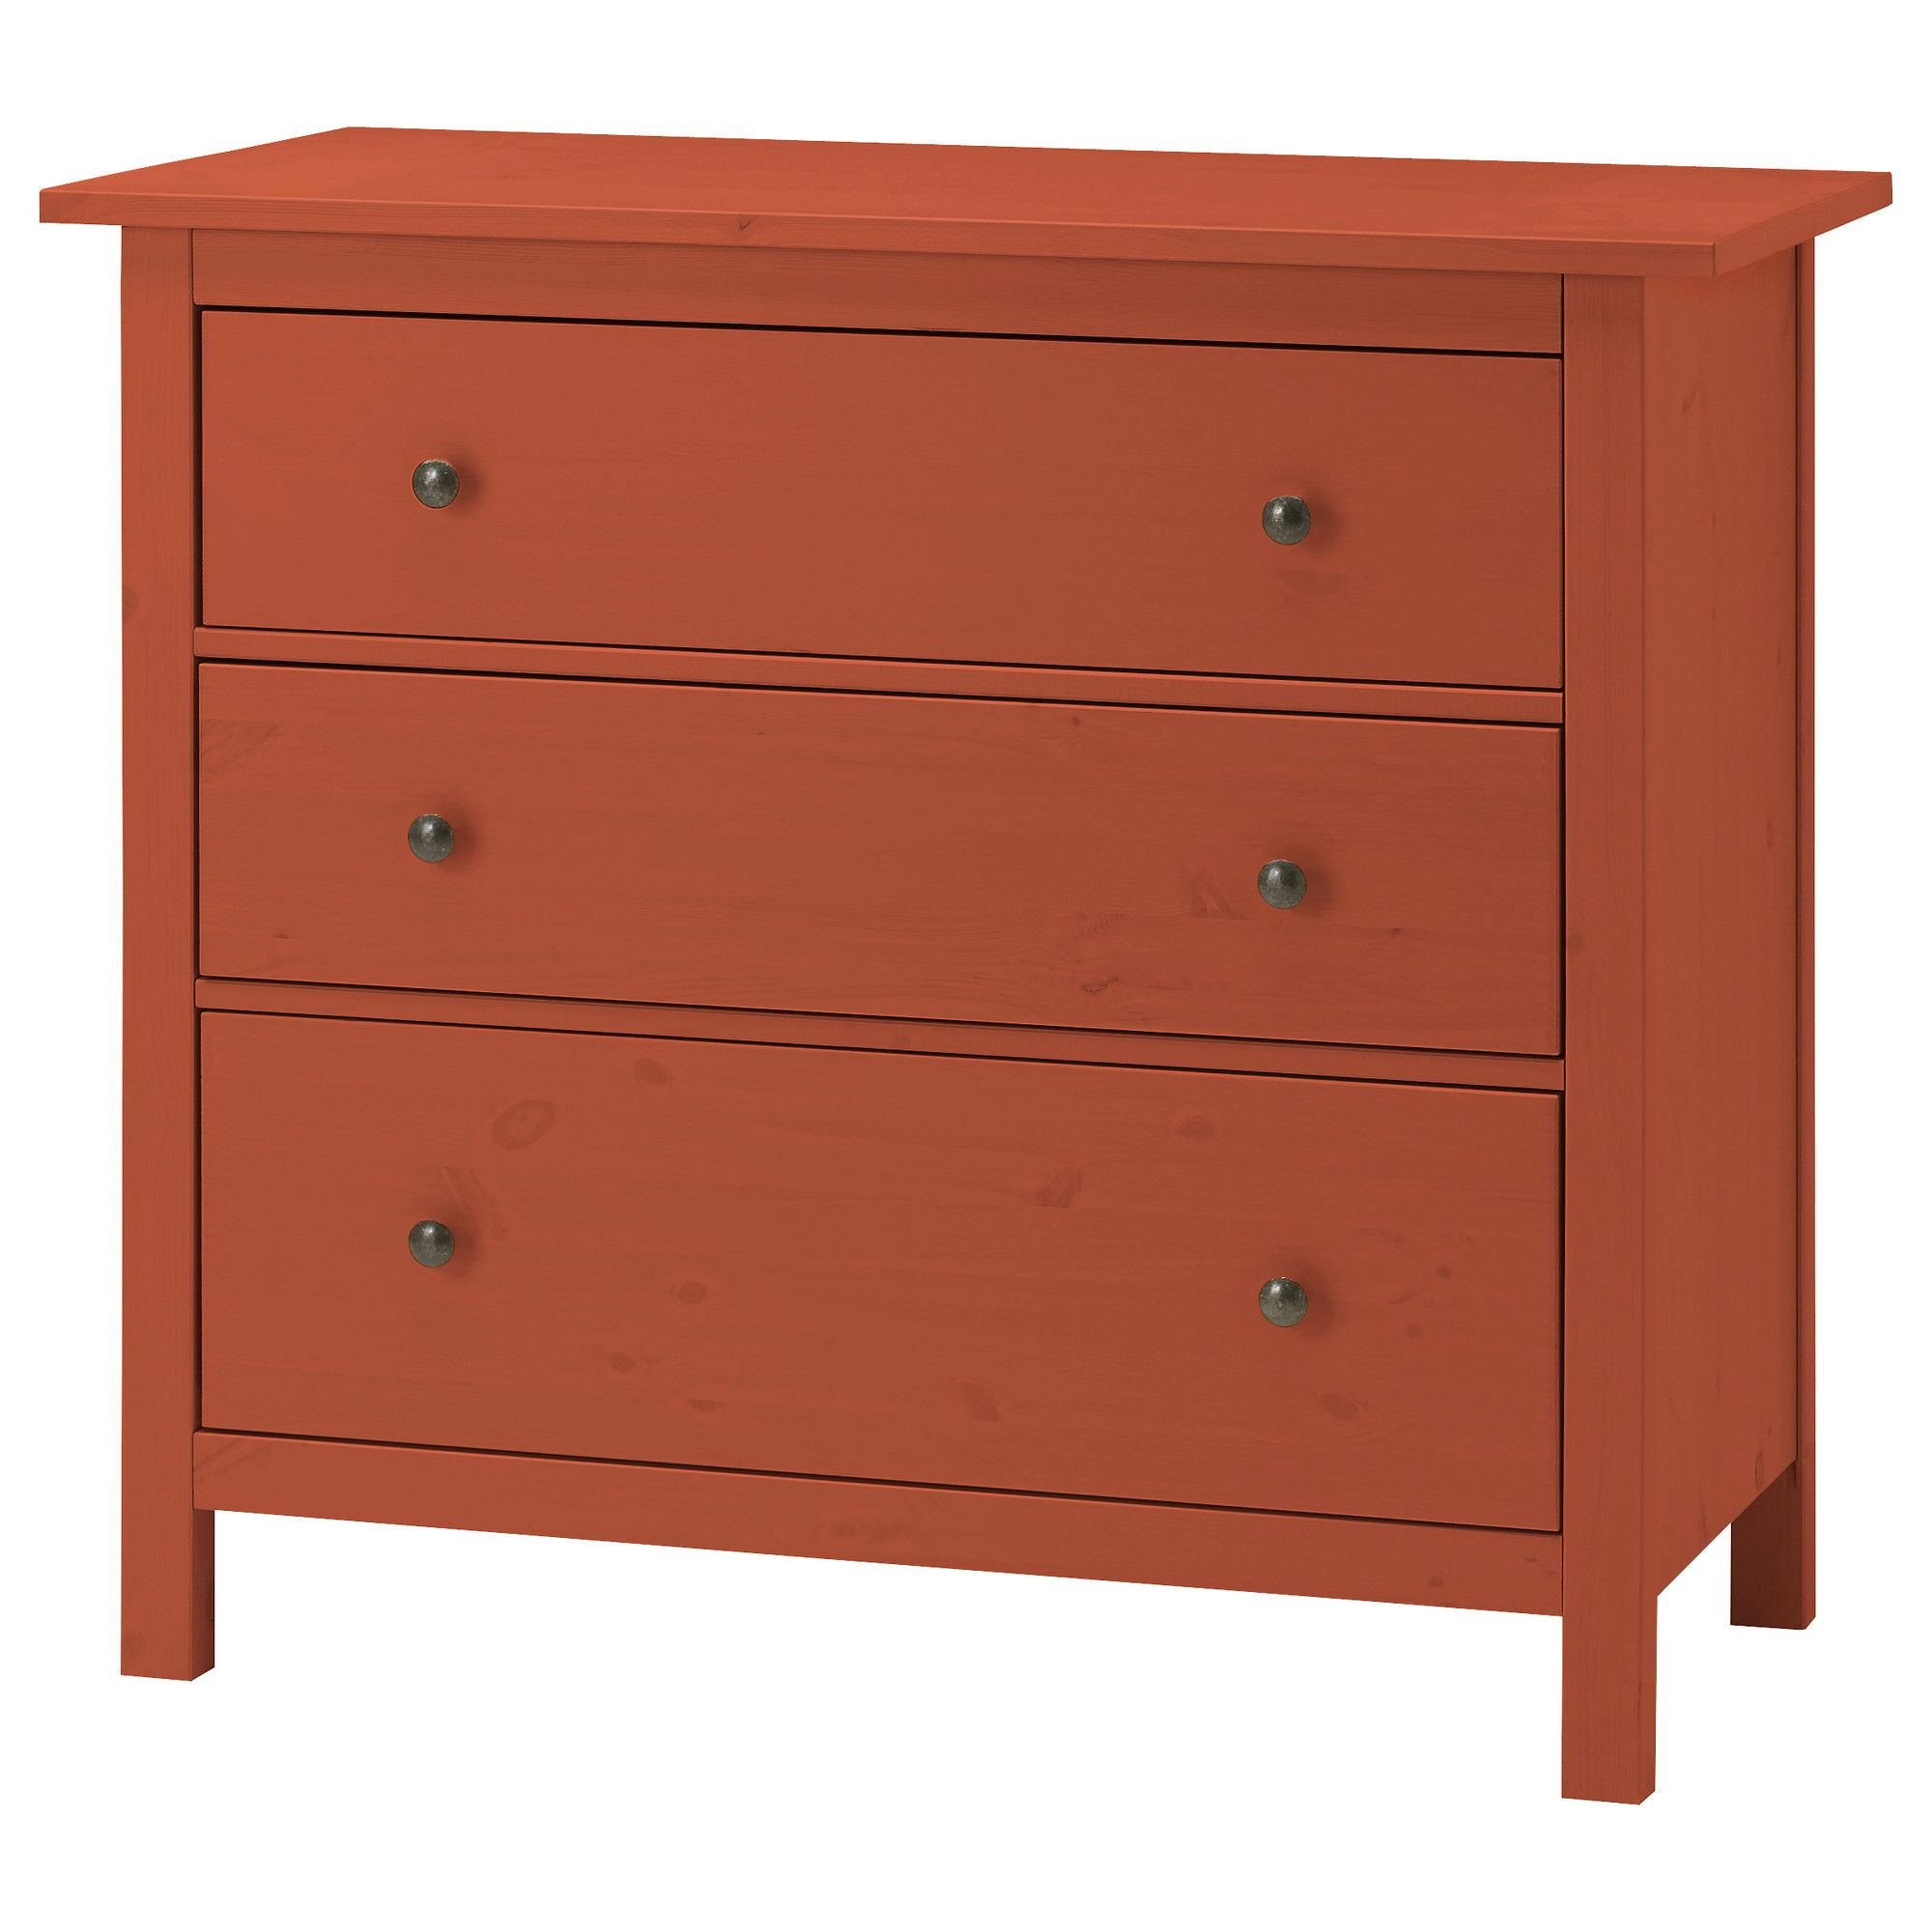 Us Furniture And Home Furnishings Ikea Bedroom Storage